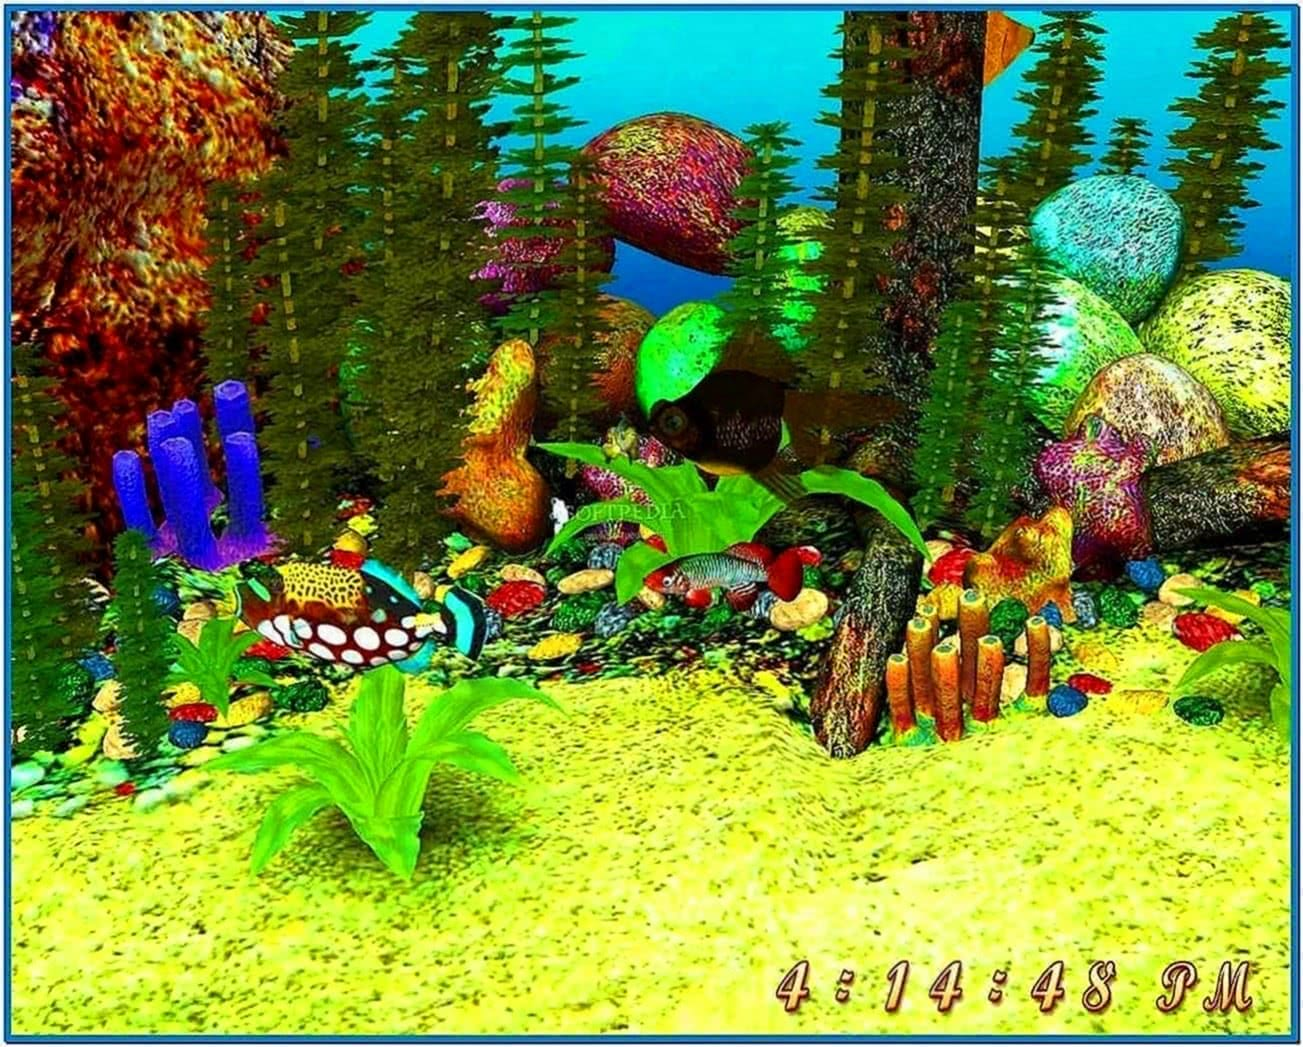 3D Aquarium Screensaver Full Version